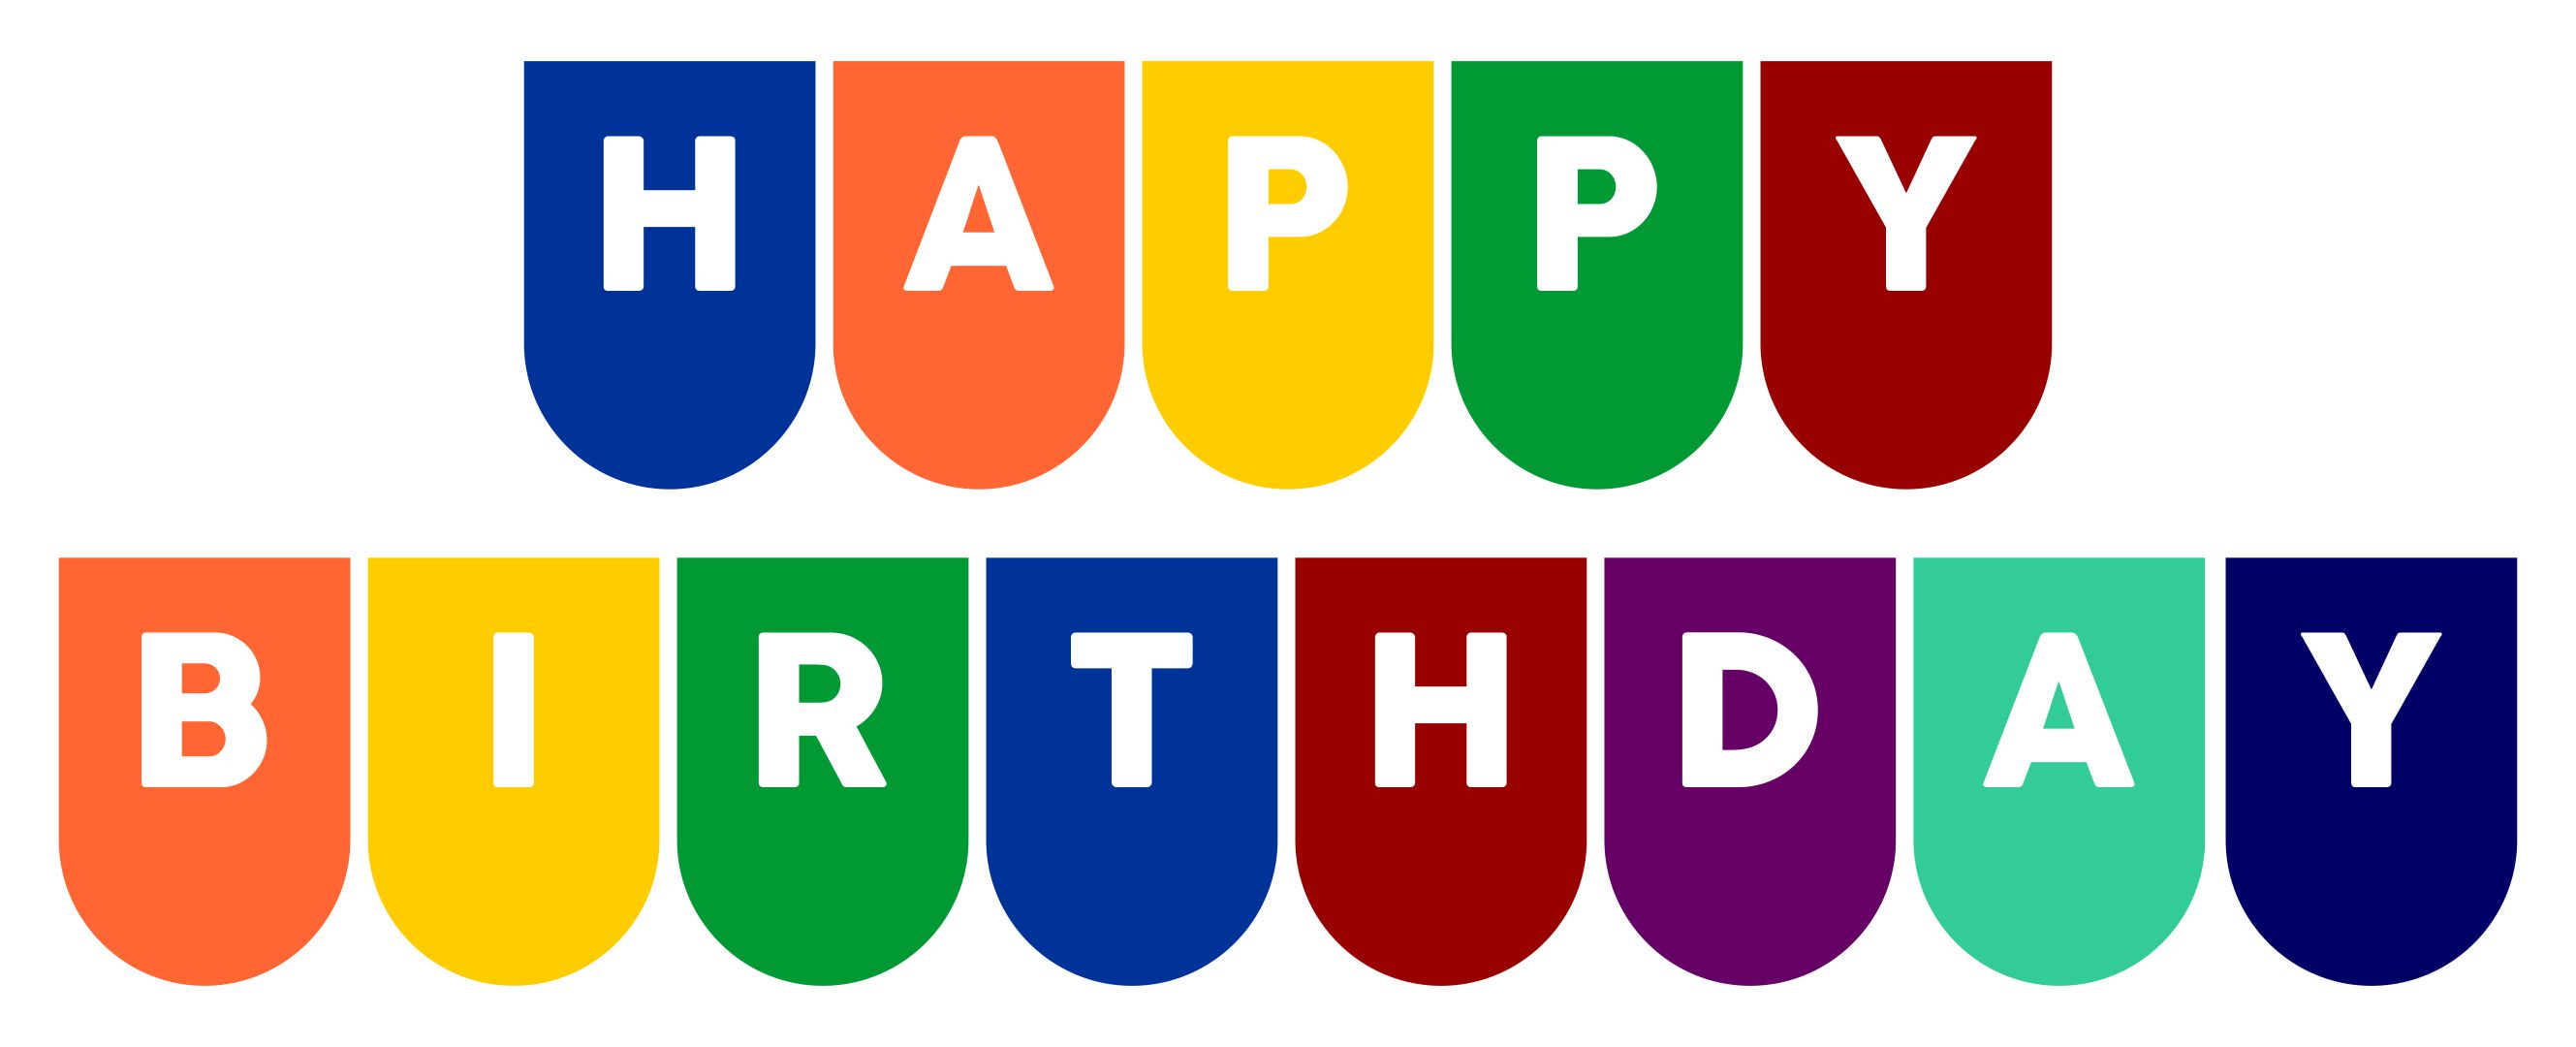 6 Best Images of Happy Birthday Printable Banners Signs ...